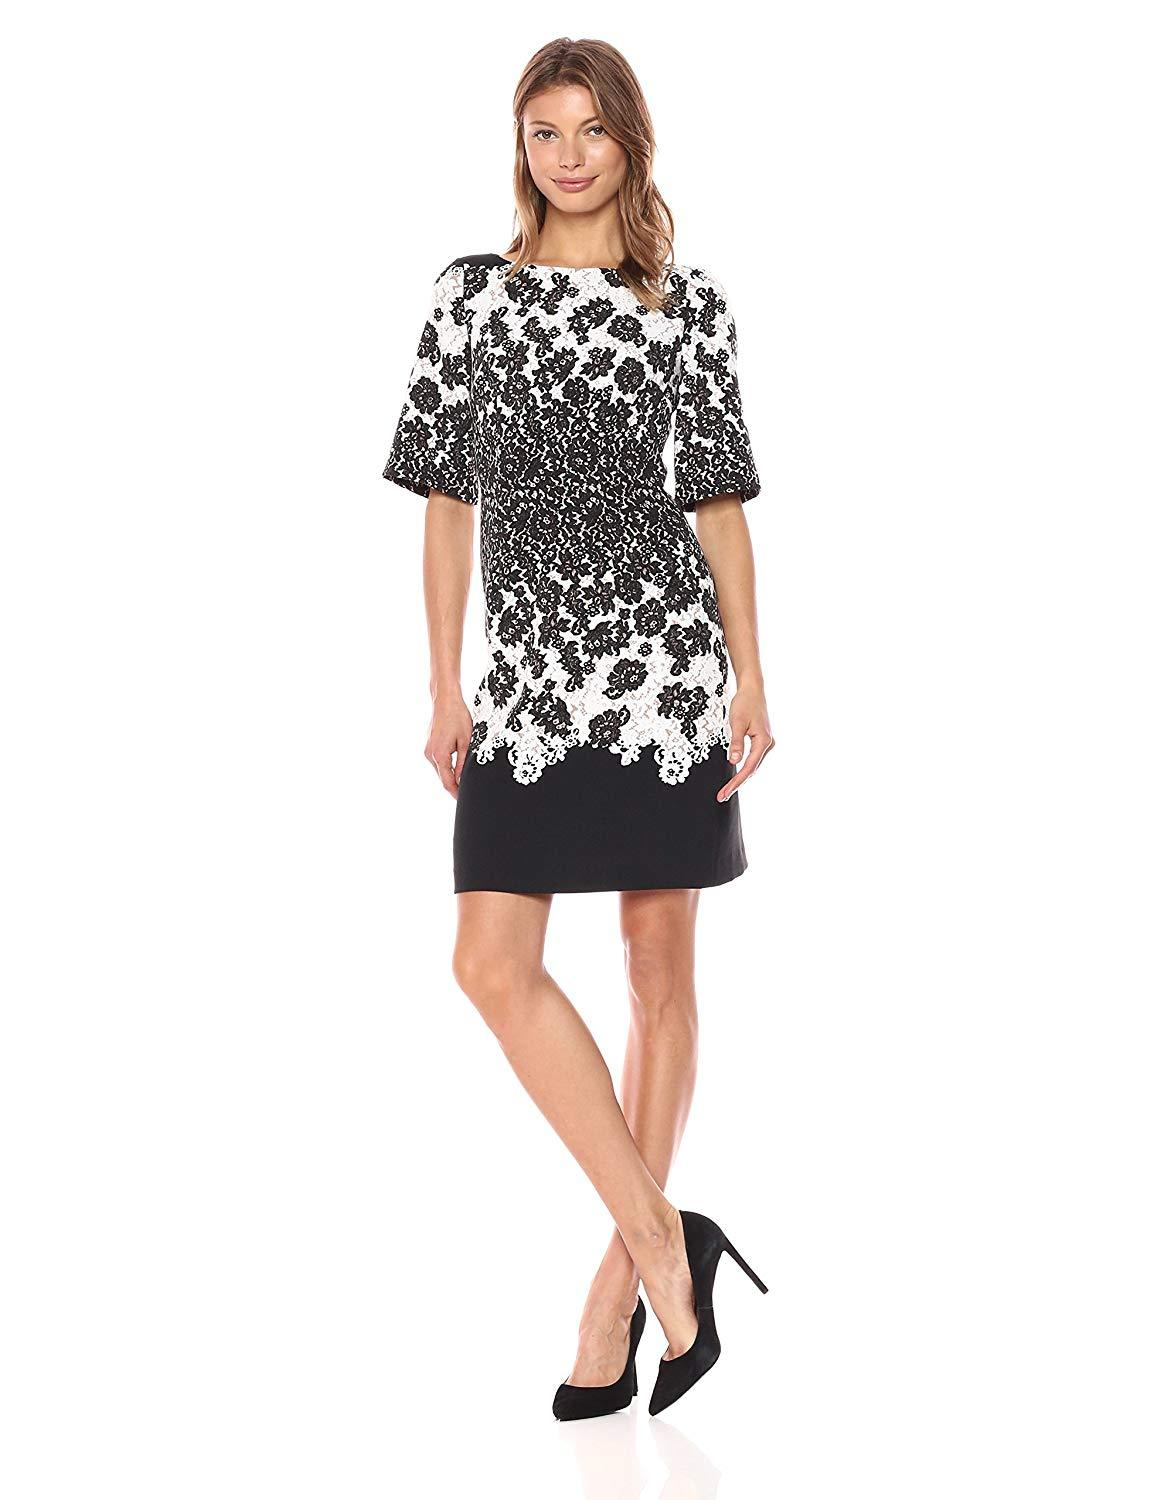 Adrianna Papell - AP1D101503 Lace Print Bateau Cocktail Dress In Black and Multi-Color